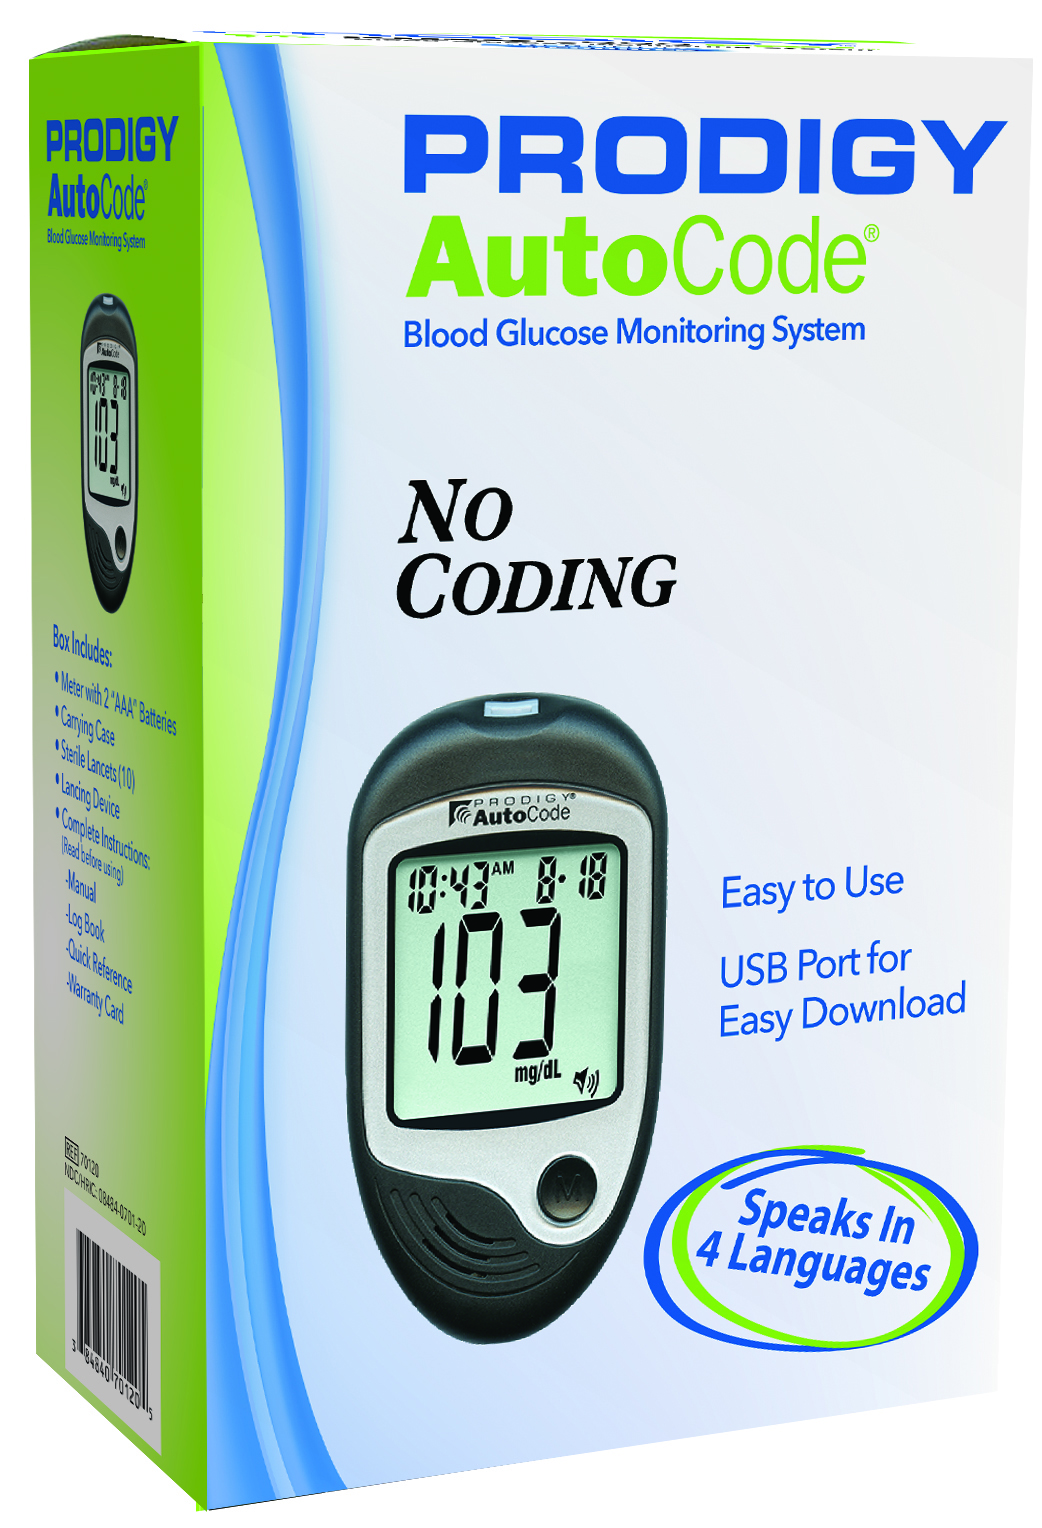 AutoCode Packaging